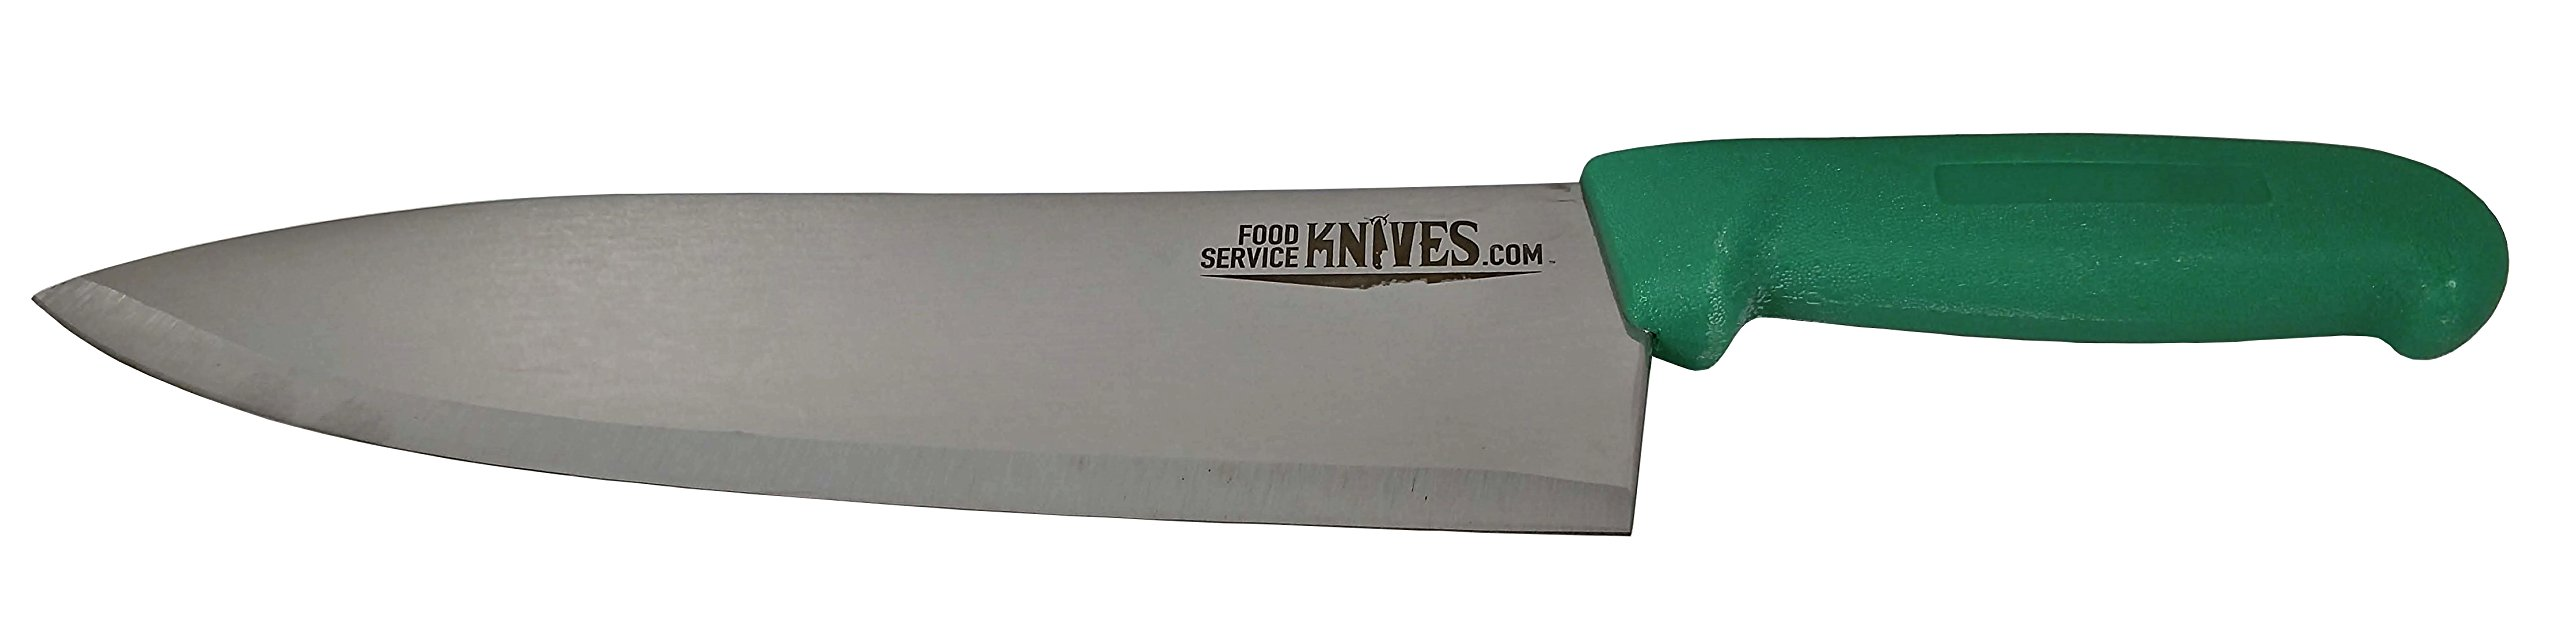 "Food Service Knives 10"" Professional Restaurant Chef Knife - Green - Color Coded for Safety - Choose Black, Blue, Red, Green, or Yellow - Cook French Stainless Steel New Sharp"